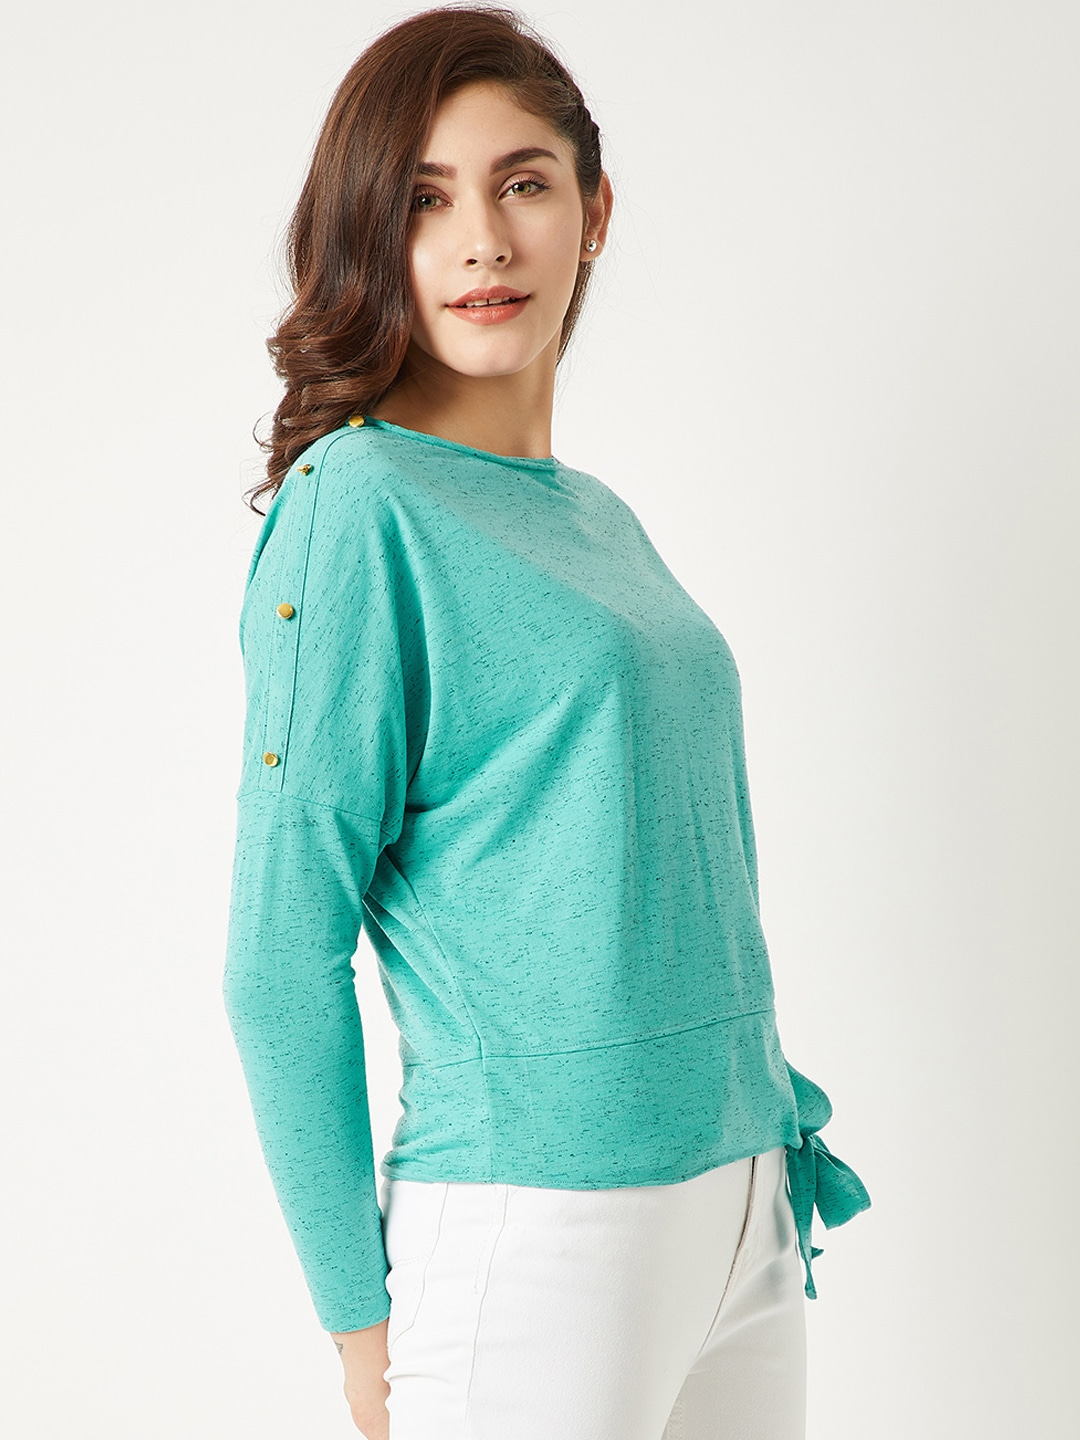 1f4424adbe9b Miss Chase Tops - Buy Miss Chase Tops online in India